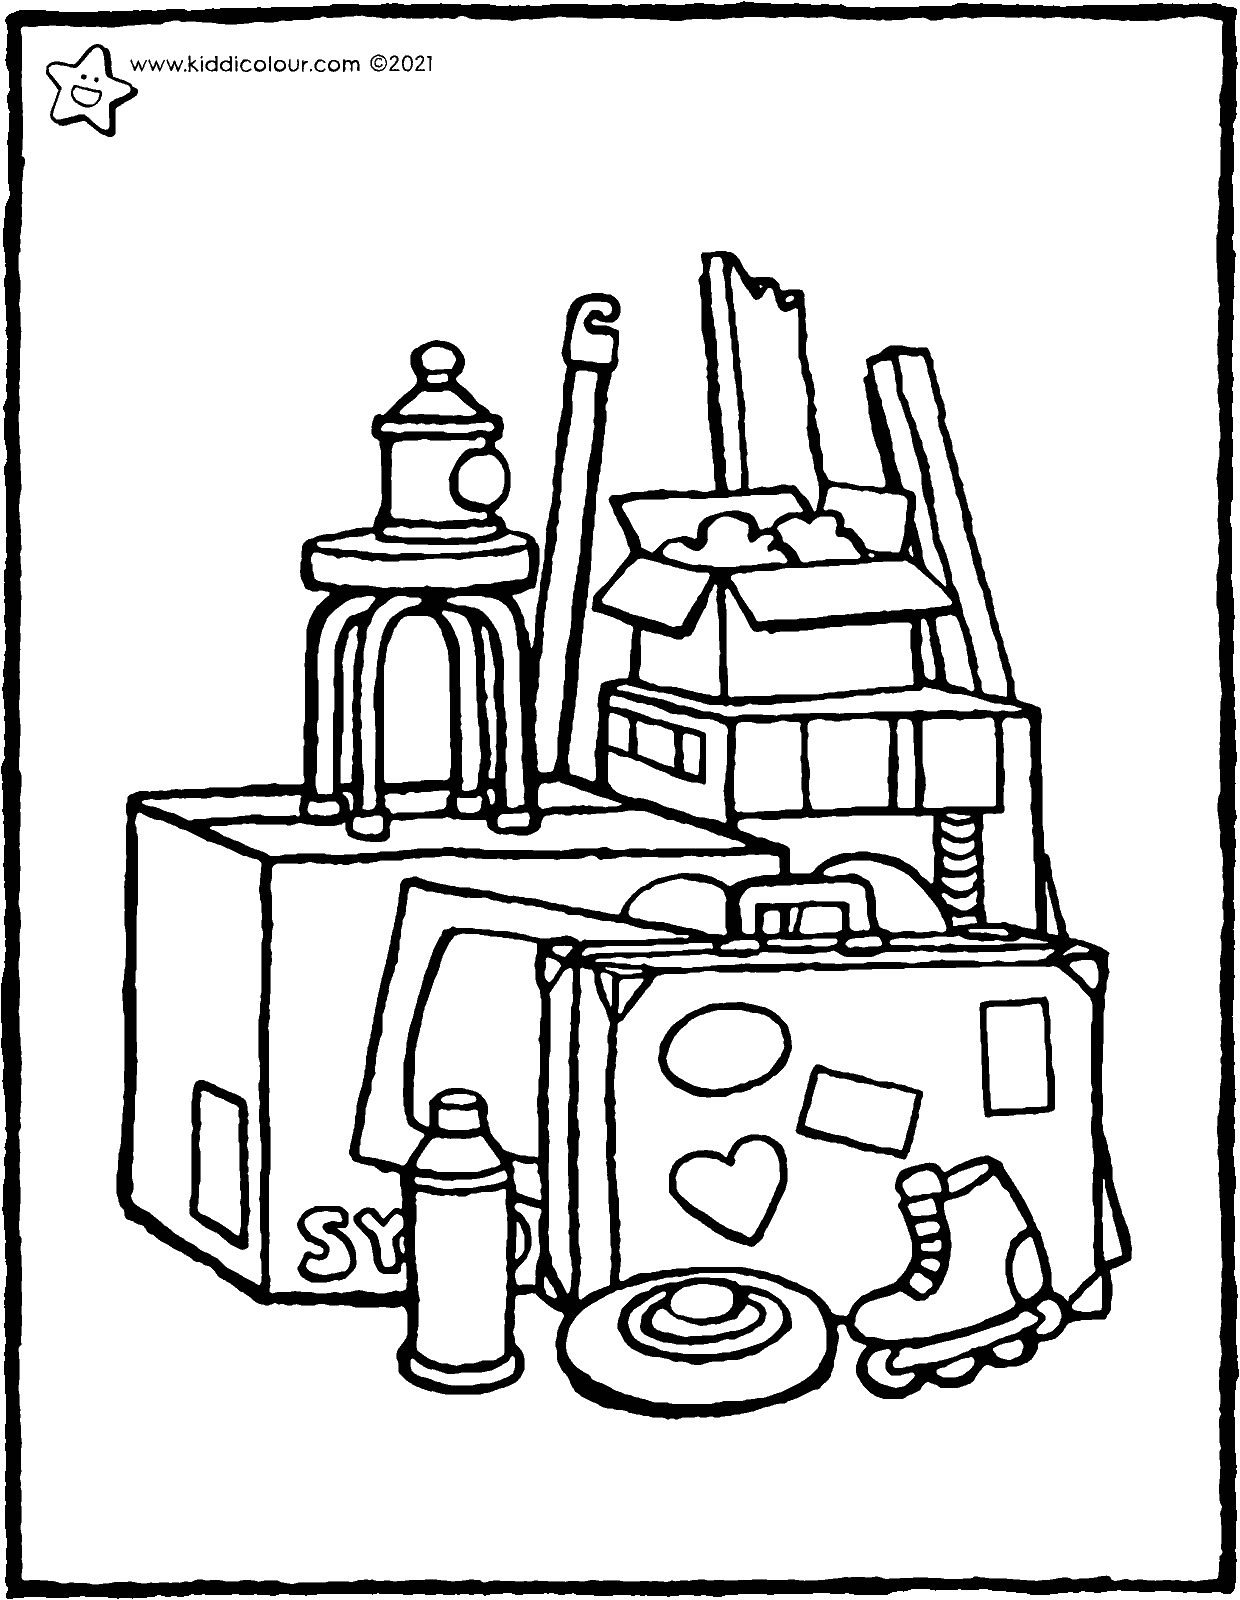 junk in the attic colouring page drawing picture 01V